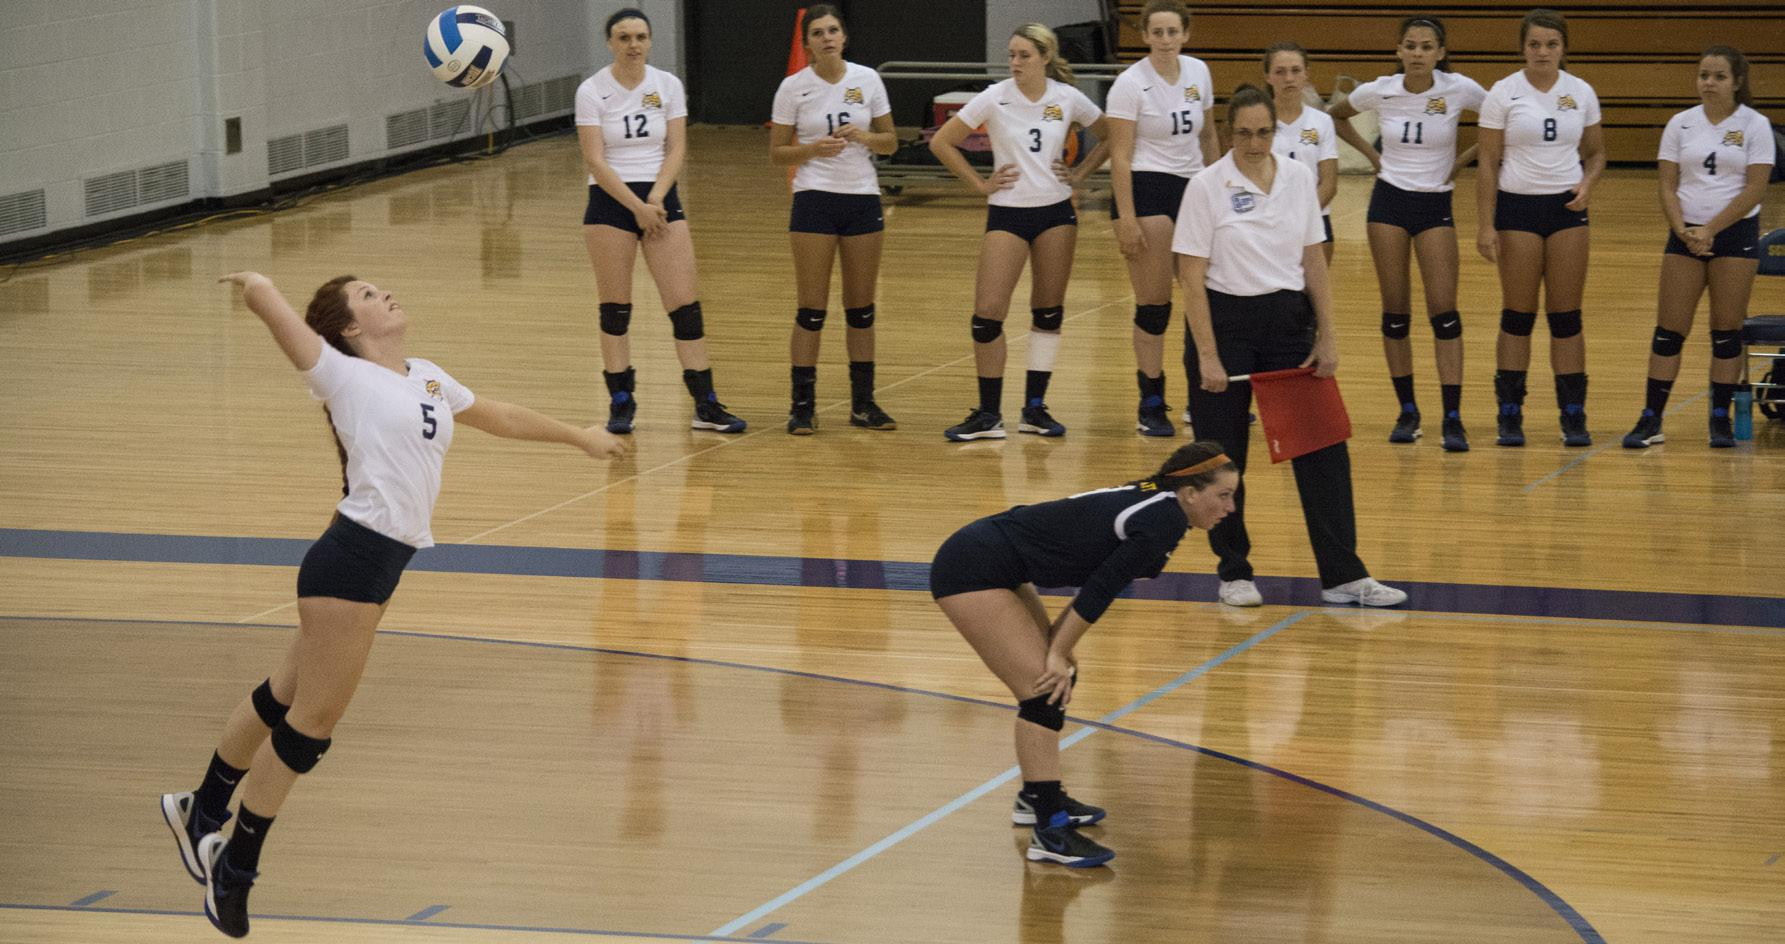 PHOTOS BY ALEX REGISH |STAFF PHOTOGRAPHER The Lady Ocelots look on as outside hitter Madison Dest (5) hits a strong serve against St. Clair County on Sept. 15.